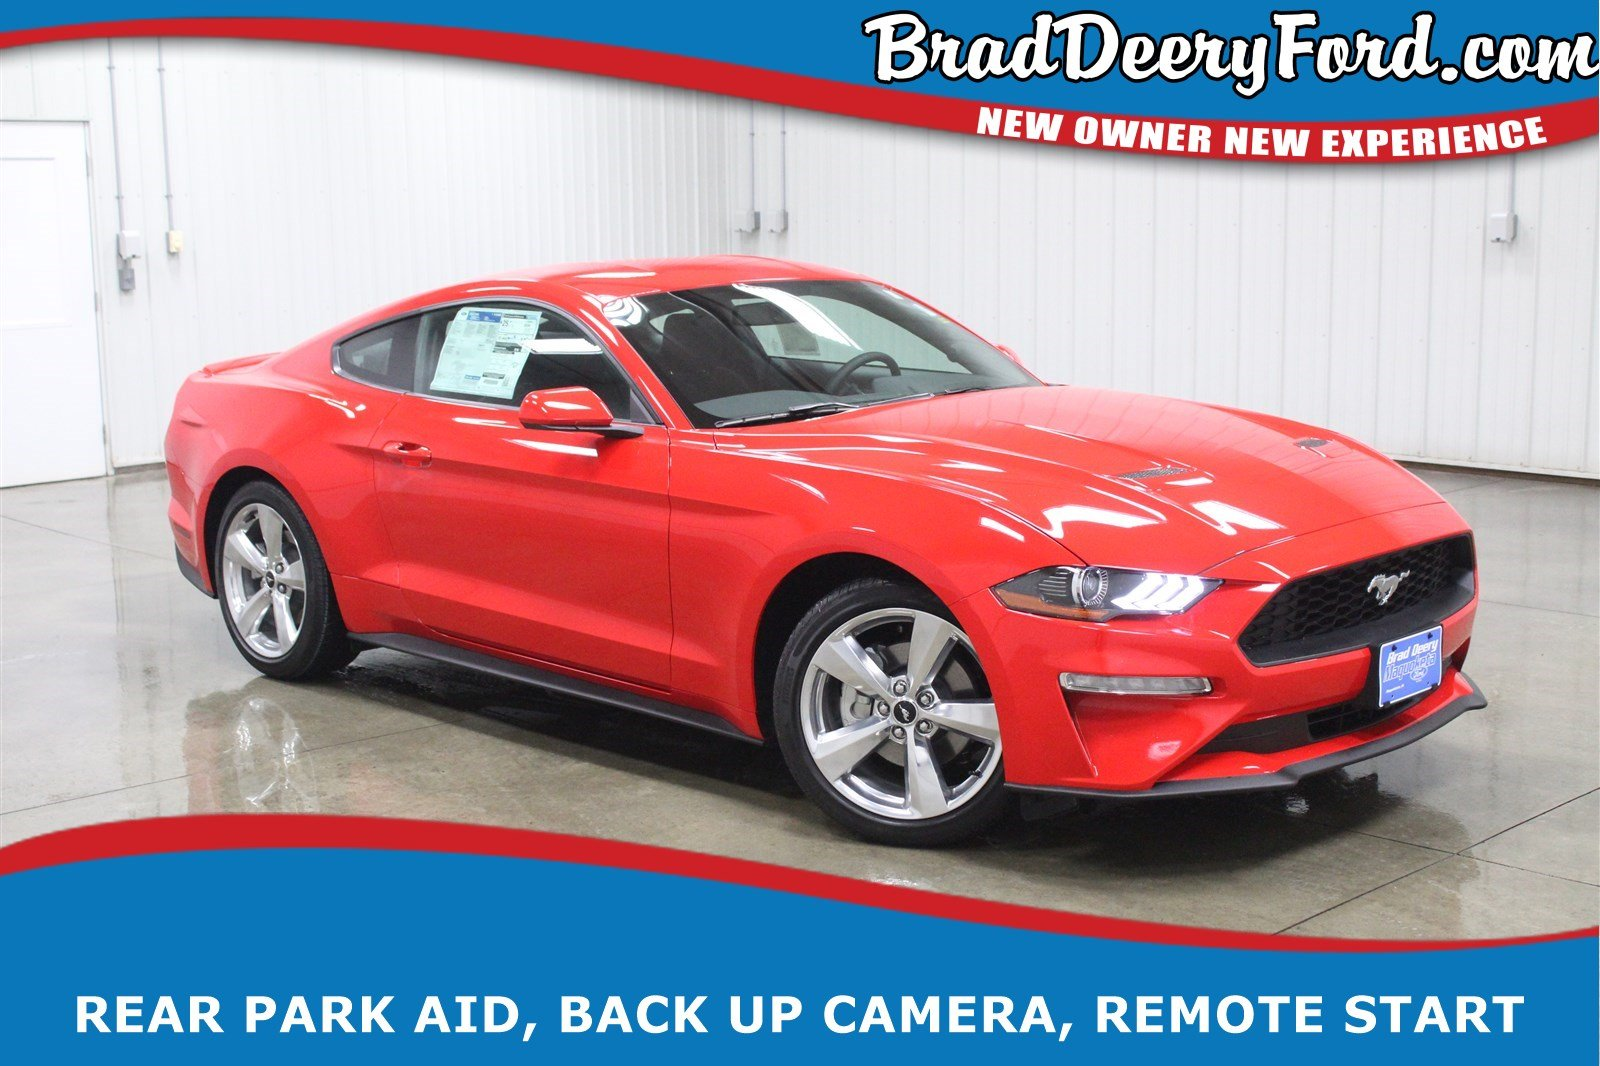 New 2018 ford mustang for sale at brad deery ford vin 1fa6p8th7j5113489